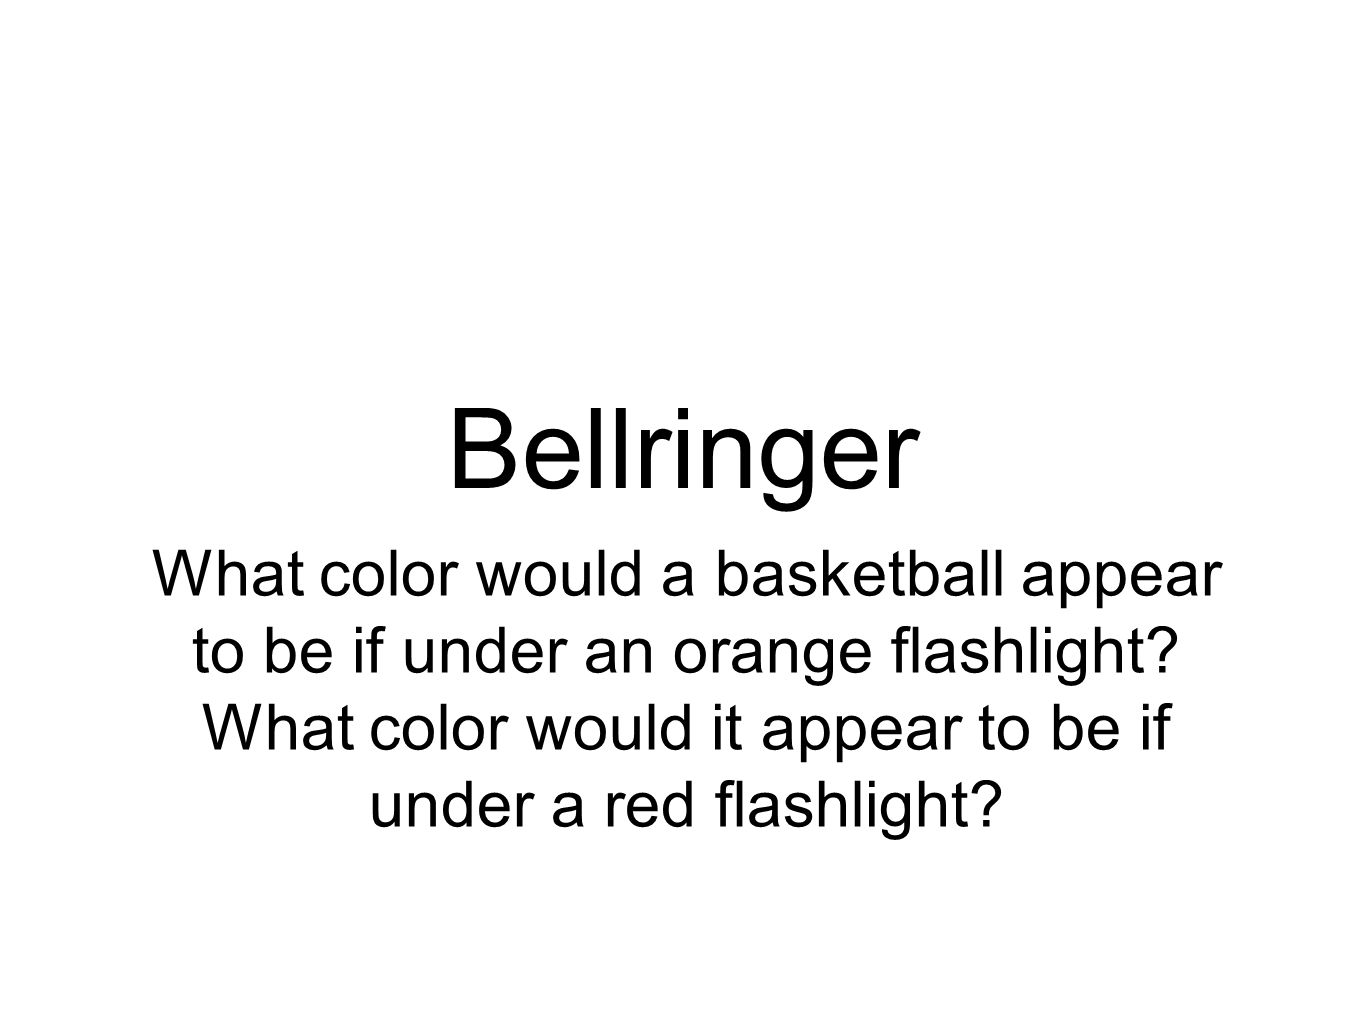 Bellringer What color would a basketball appear to be if under an orange flashlight? What color would it appear to be if under a red flashlight?